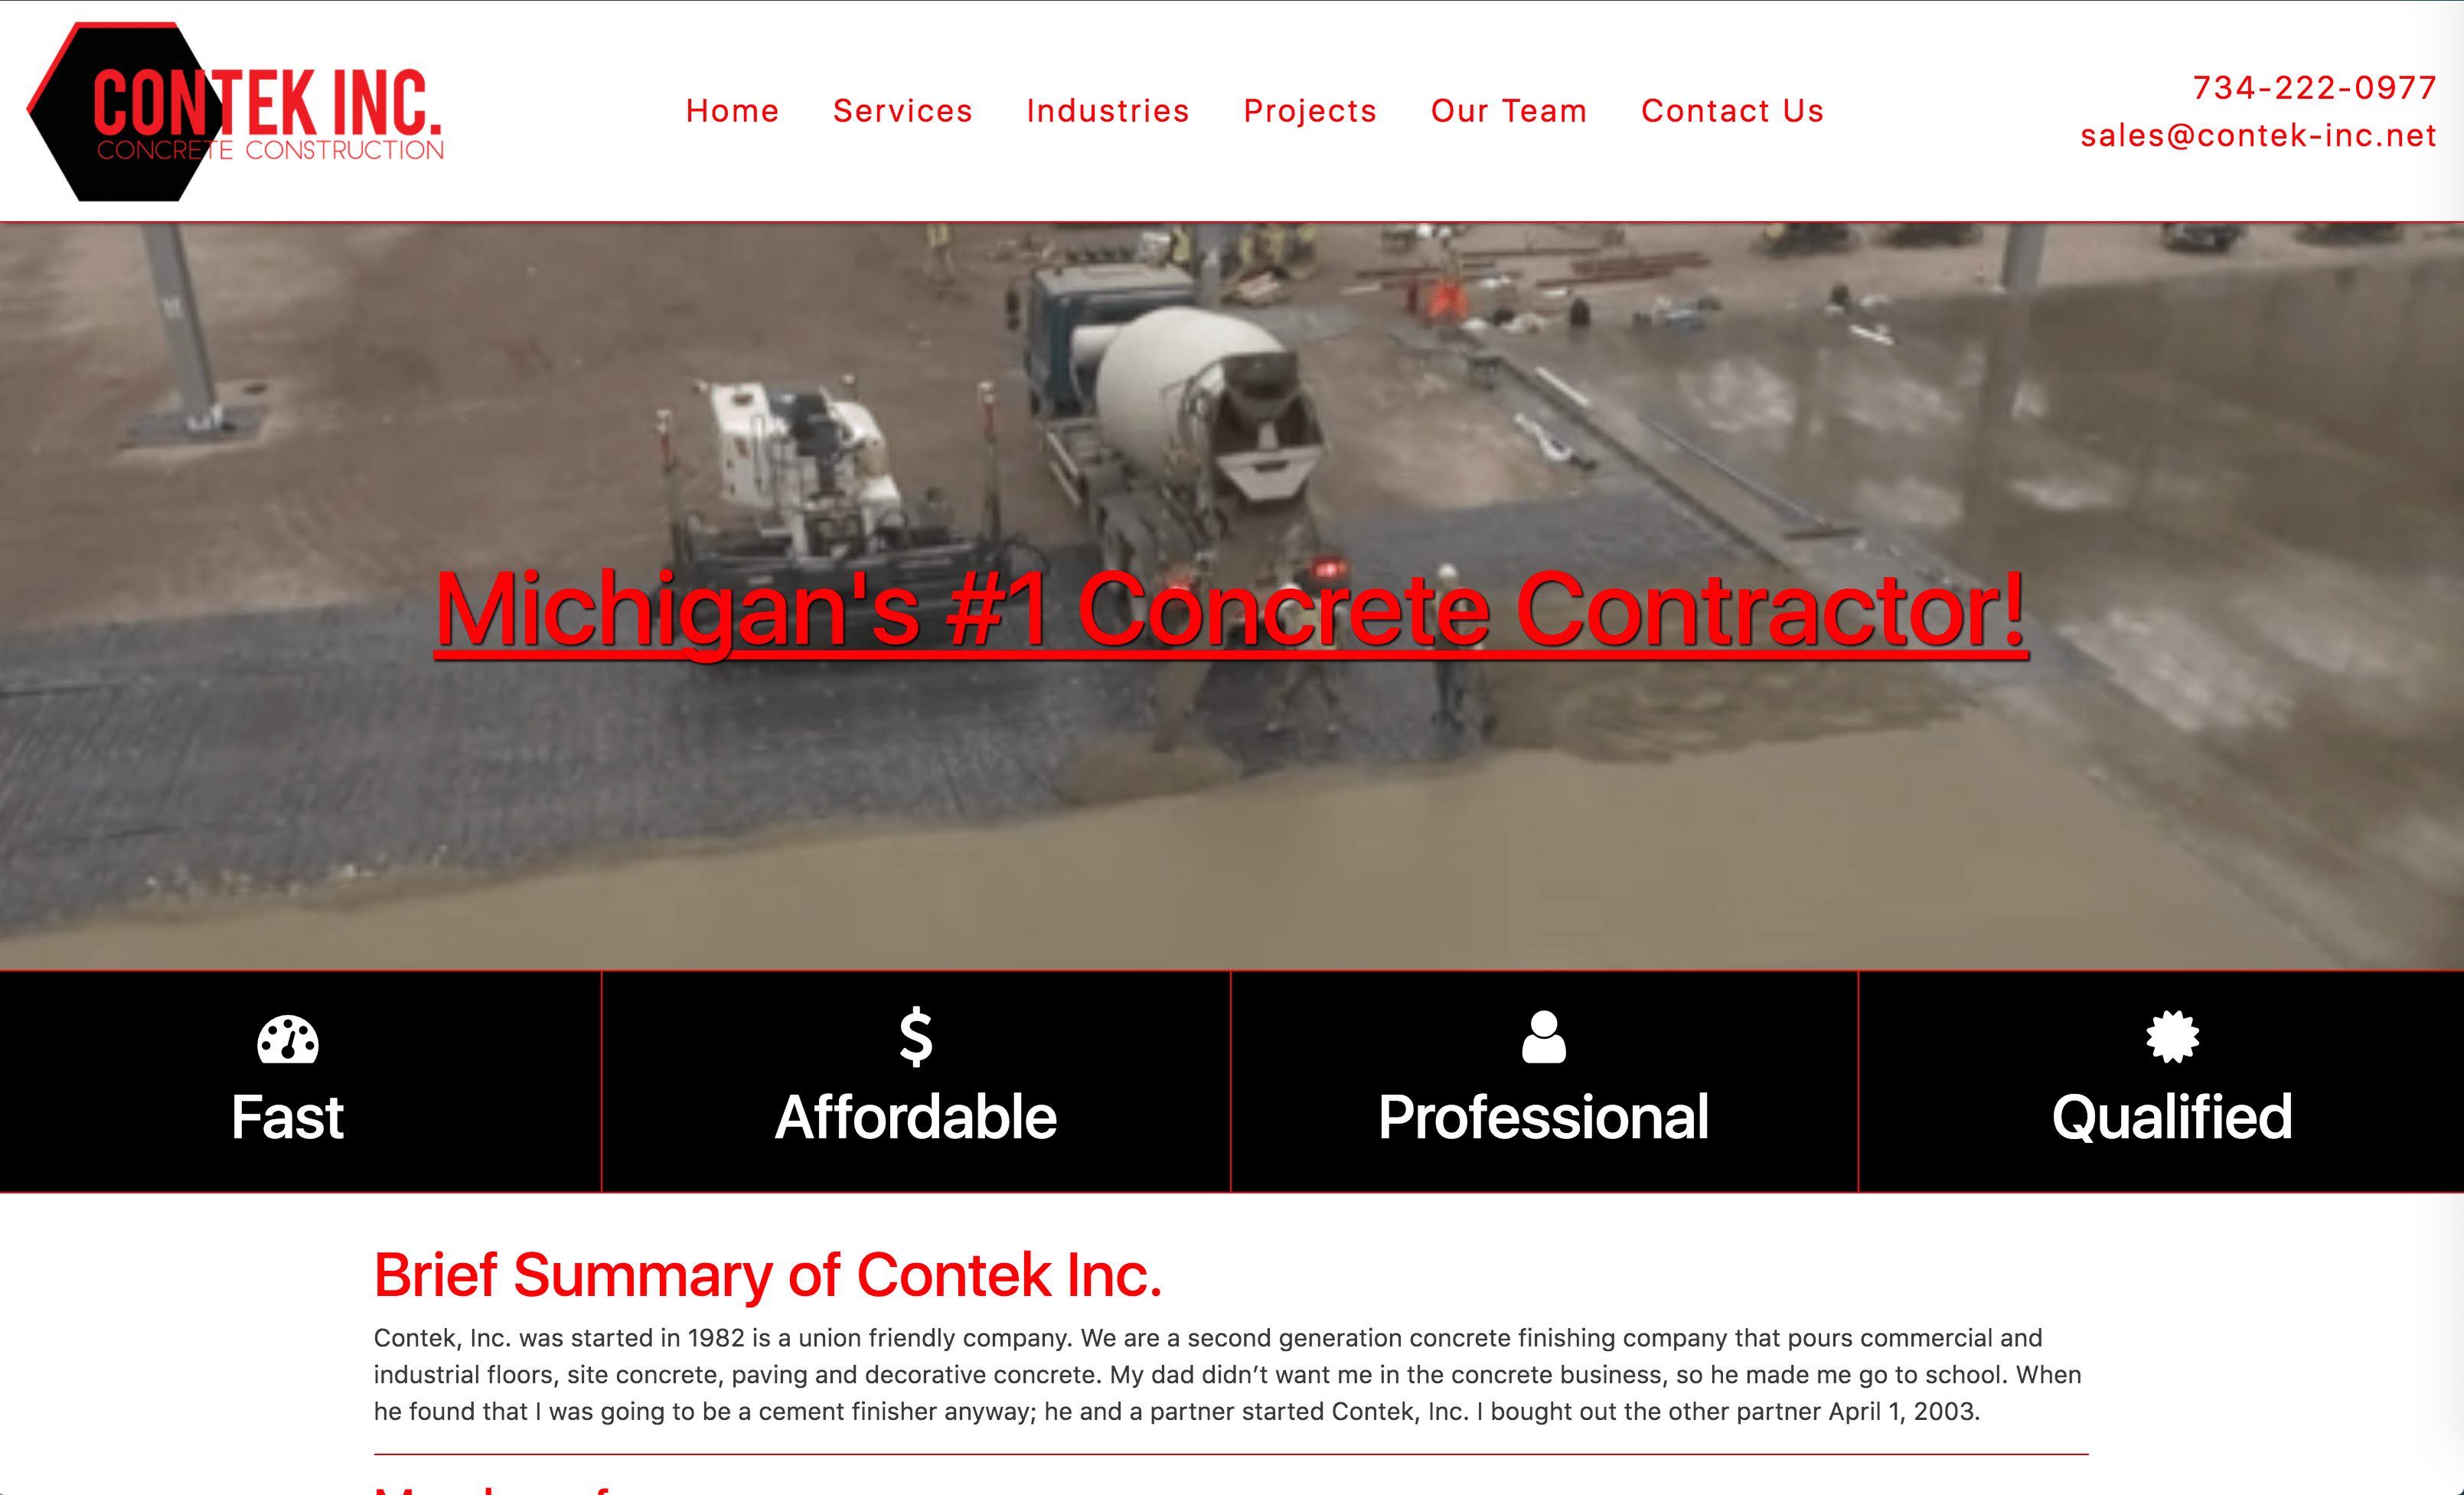 Contek is a concrete contractor company.